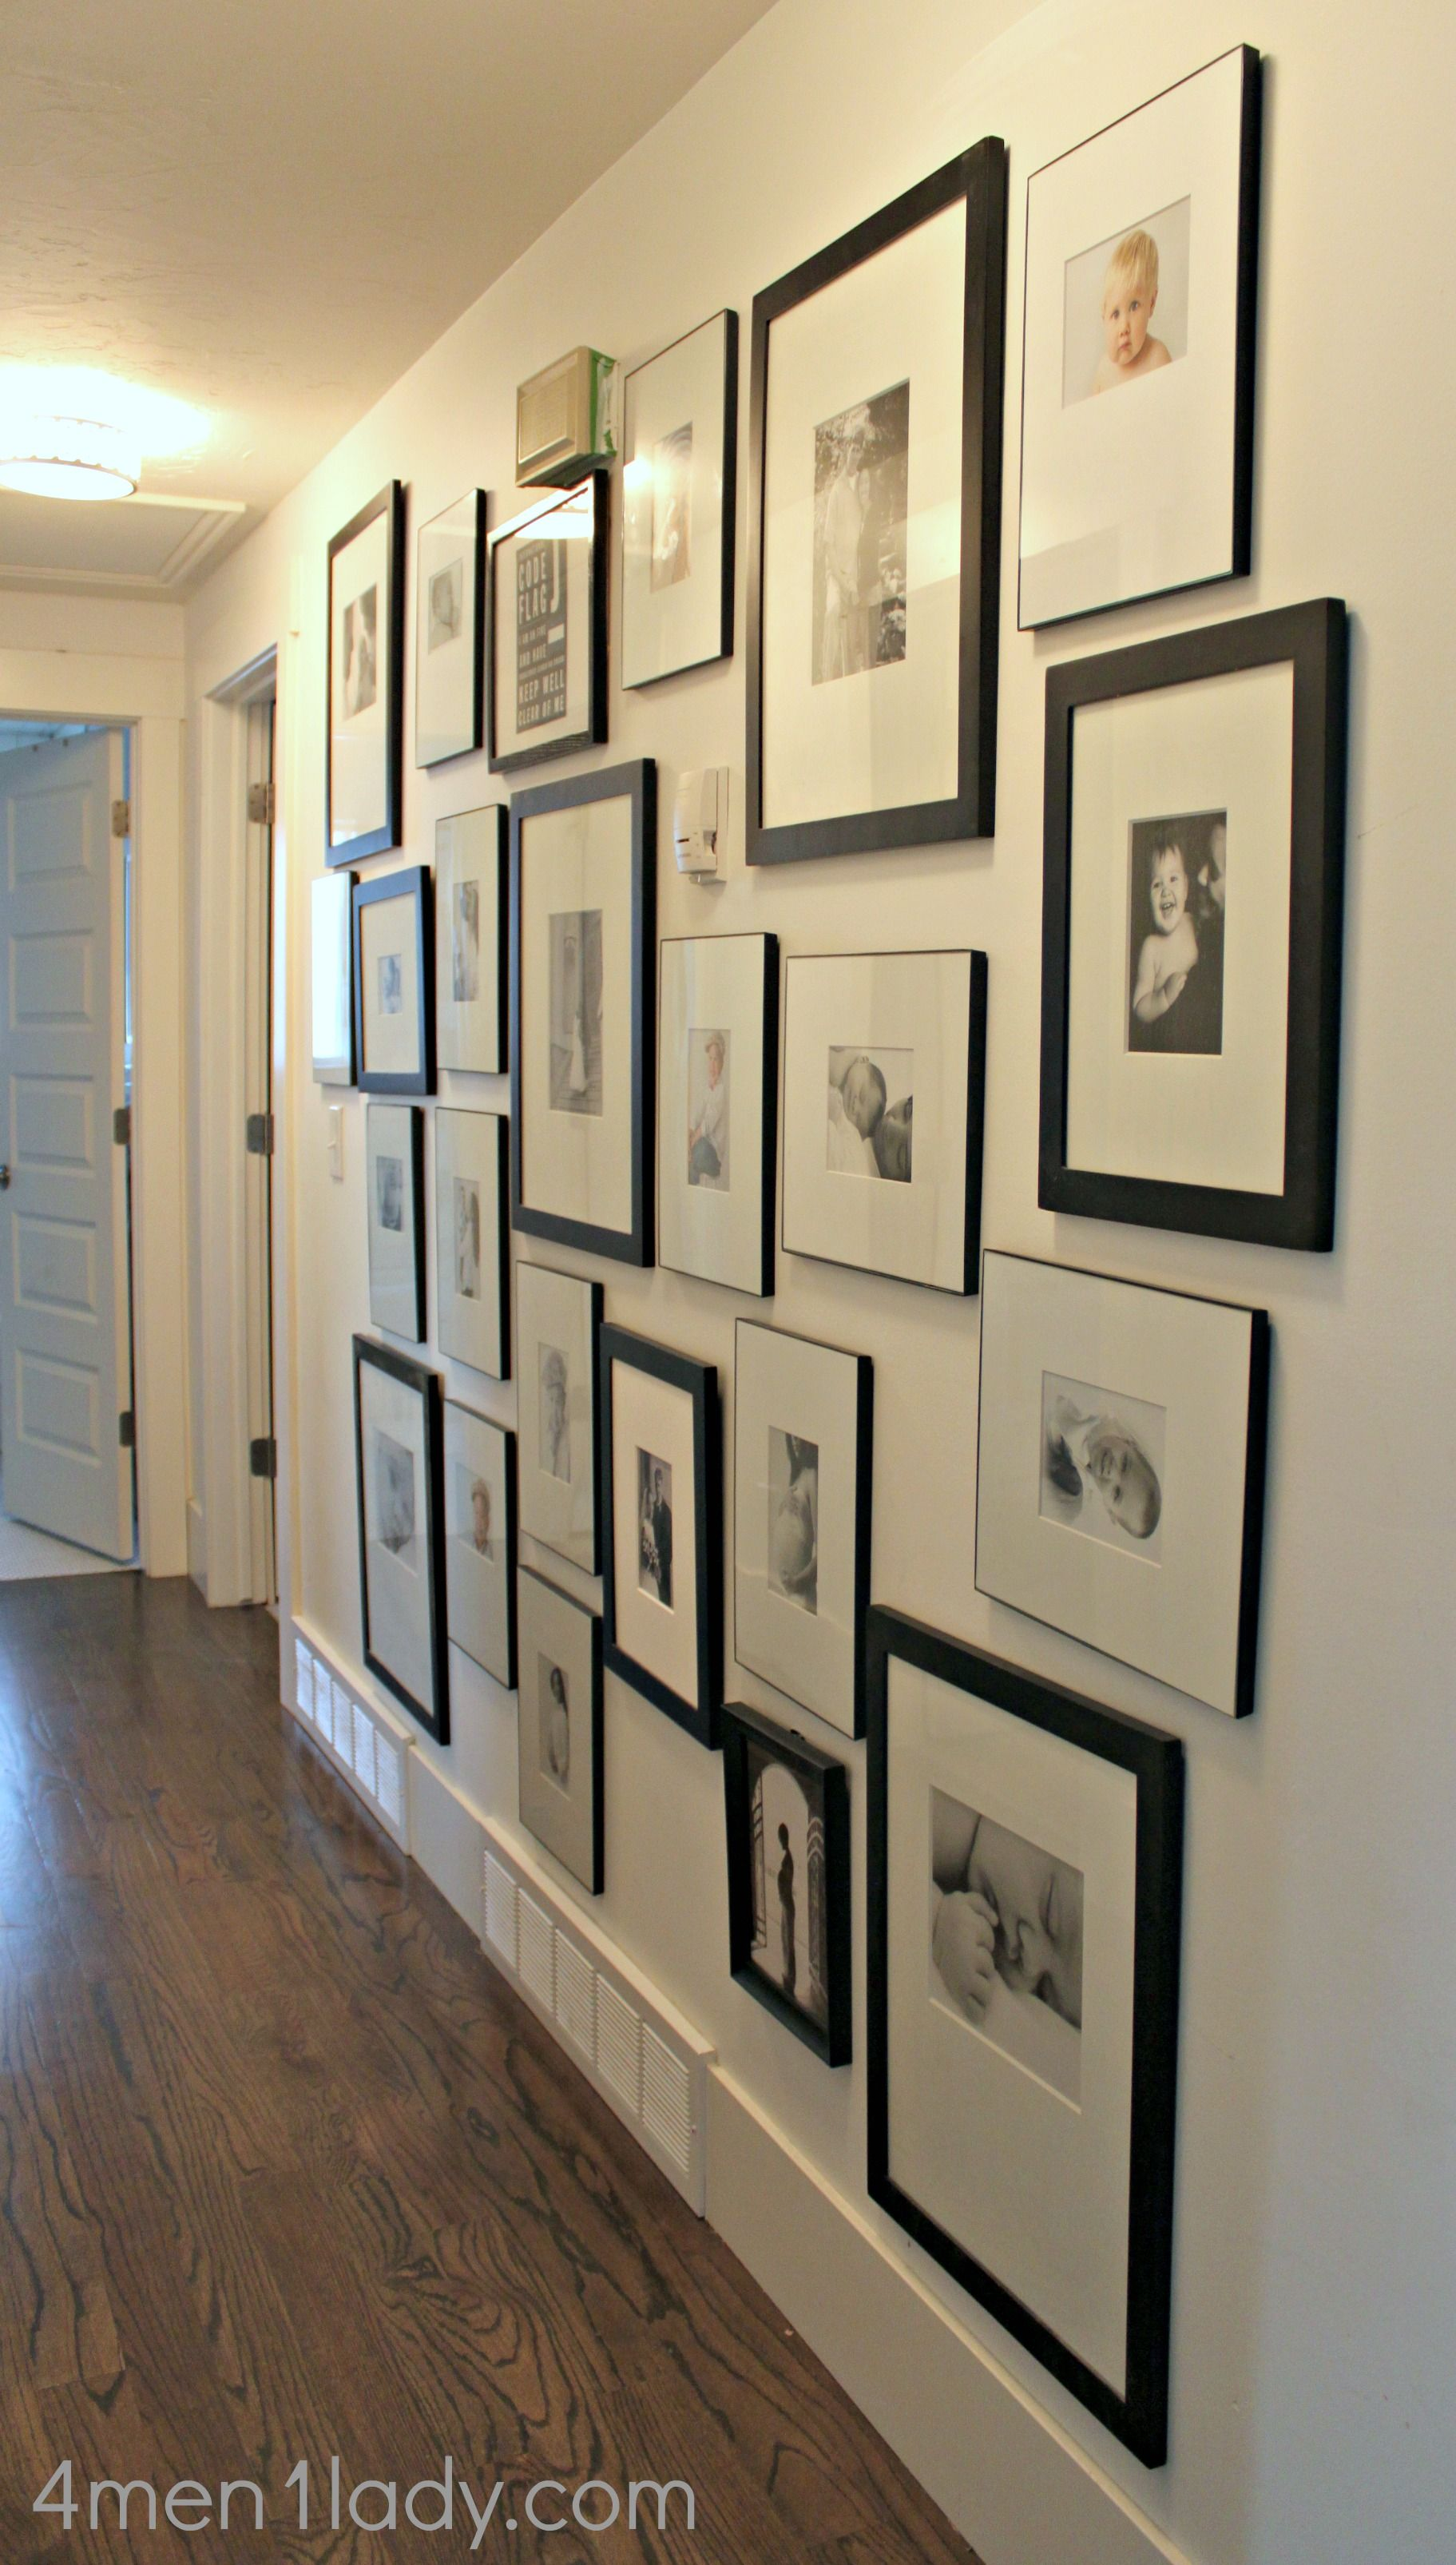 The Makings Of A Gallery Wall Must Do This With Our Future Home Gallery Wall Gallery Wall Bedroom Frames On Wall